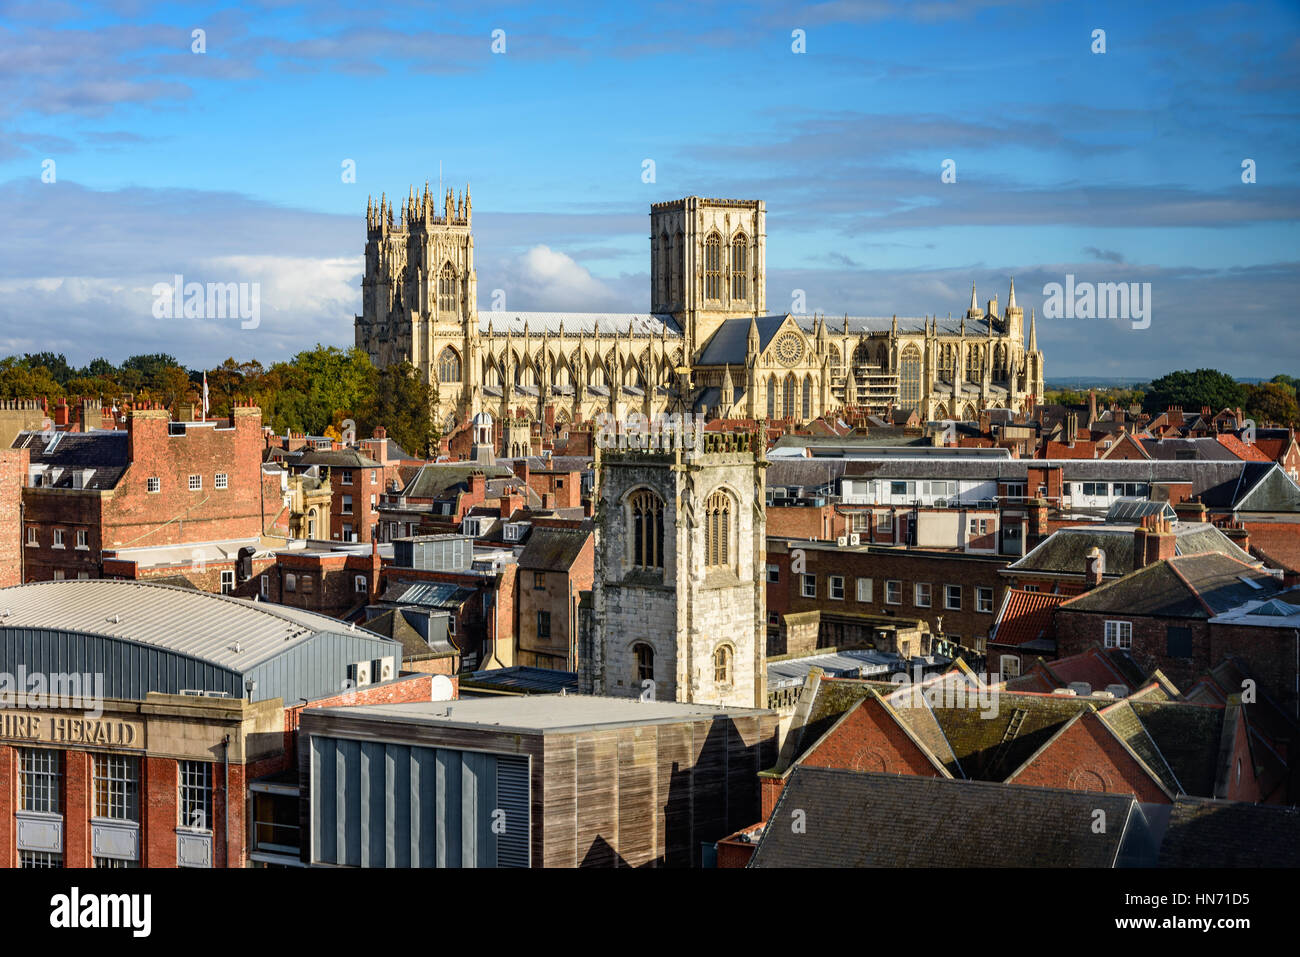 The Cathedral and Metropolitical Church of Saint Peter in York, commonly known as York Minster in England. - Stock Image